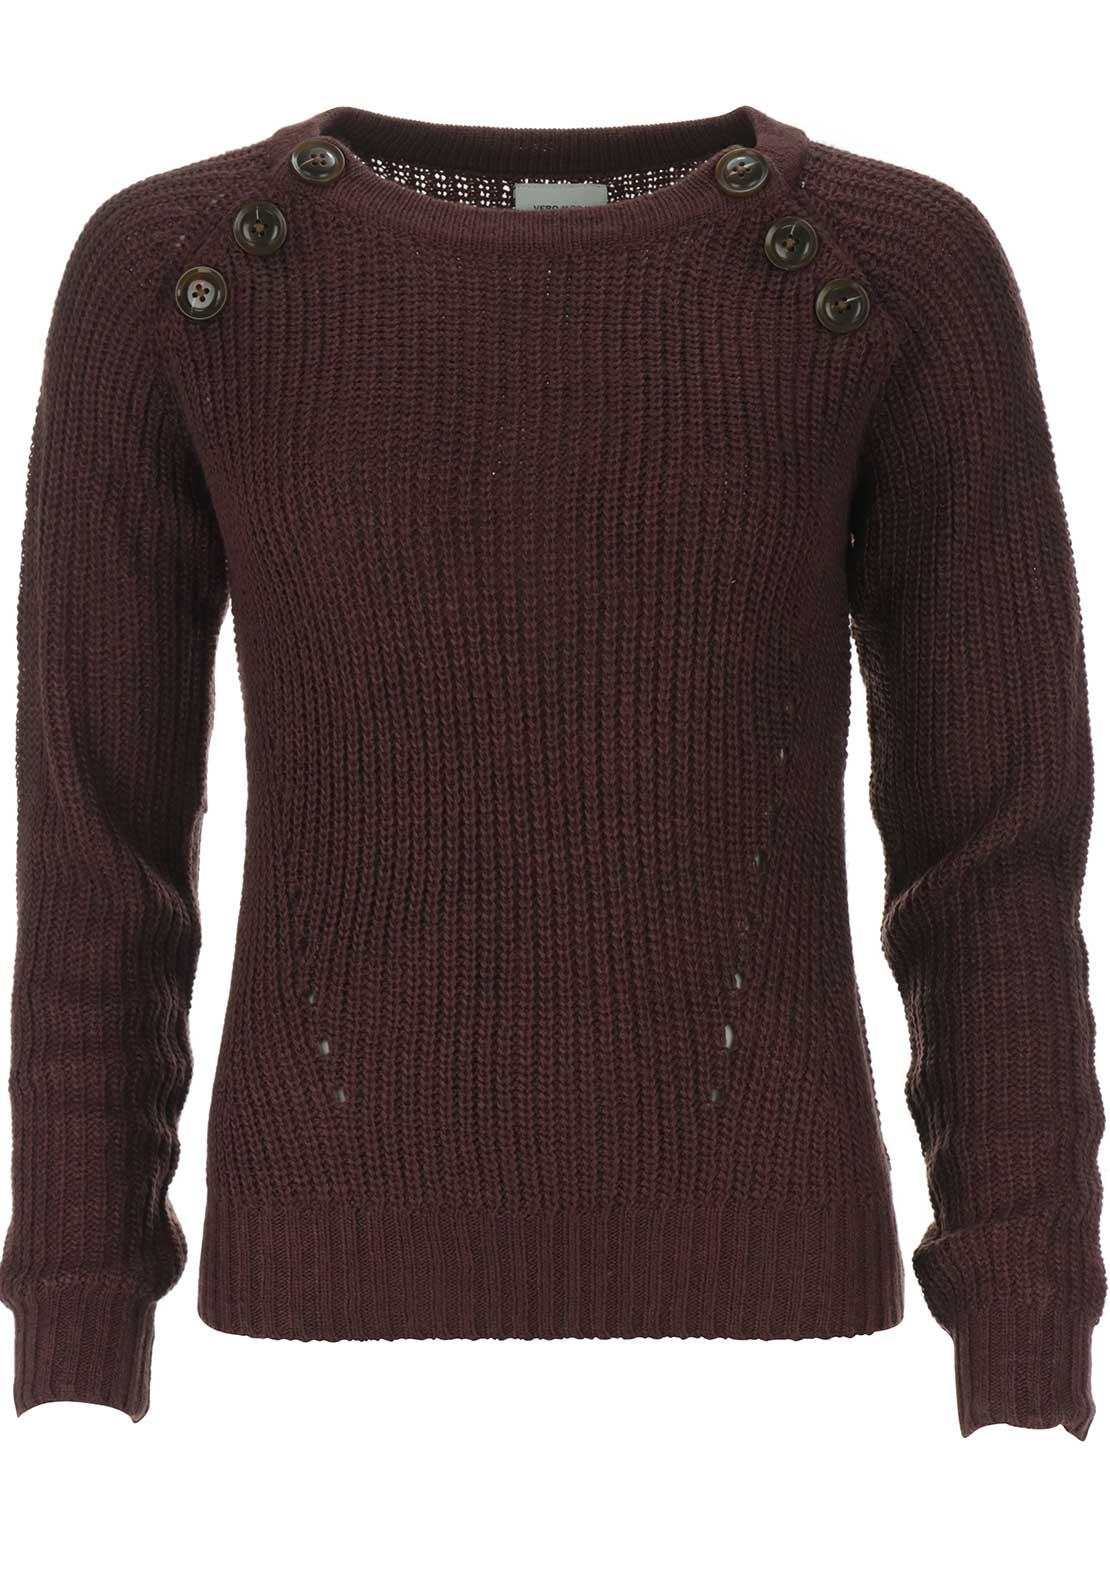 Vero Moda Joya Button Knit Jumper, Wine